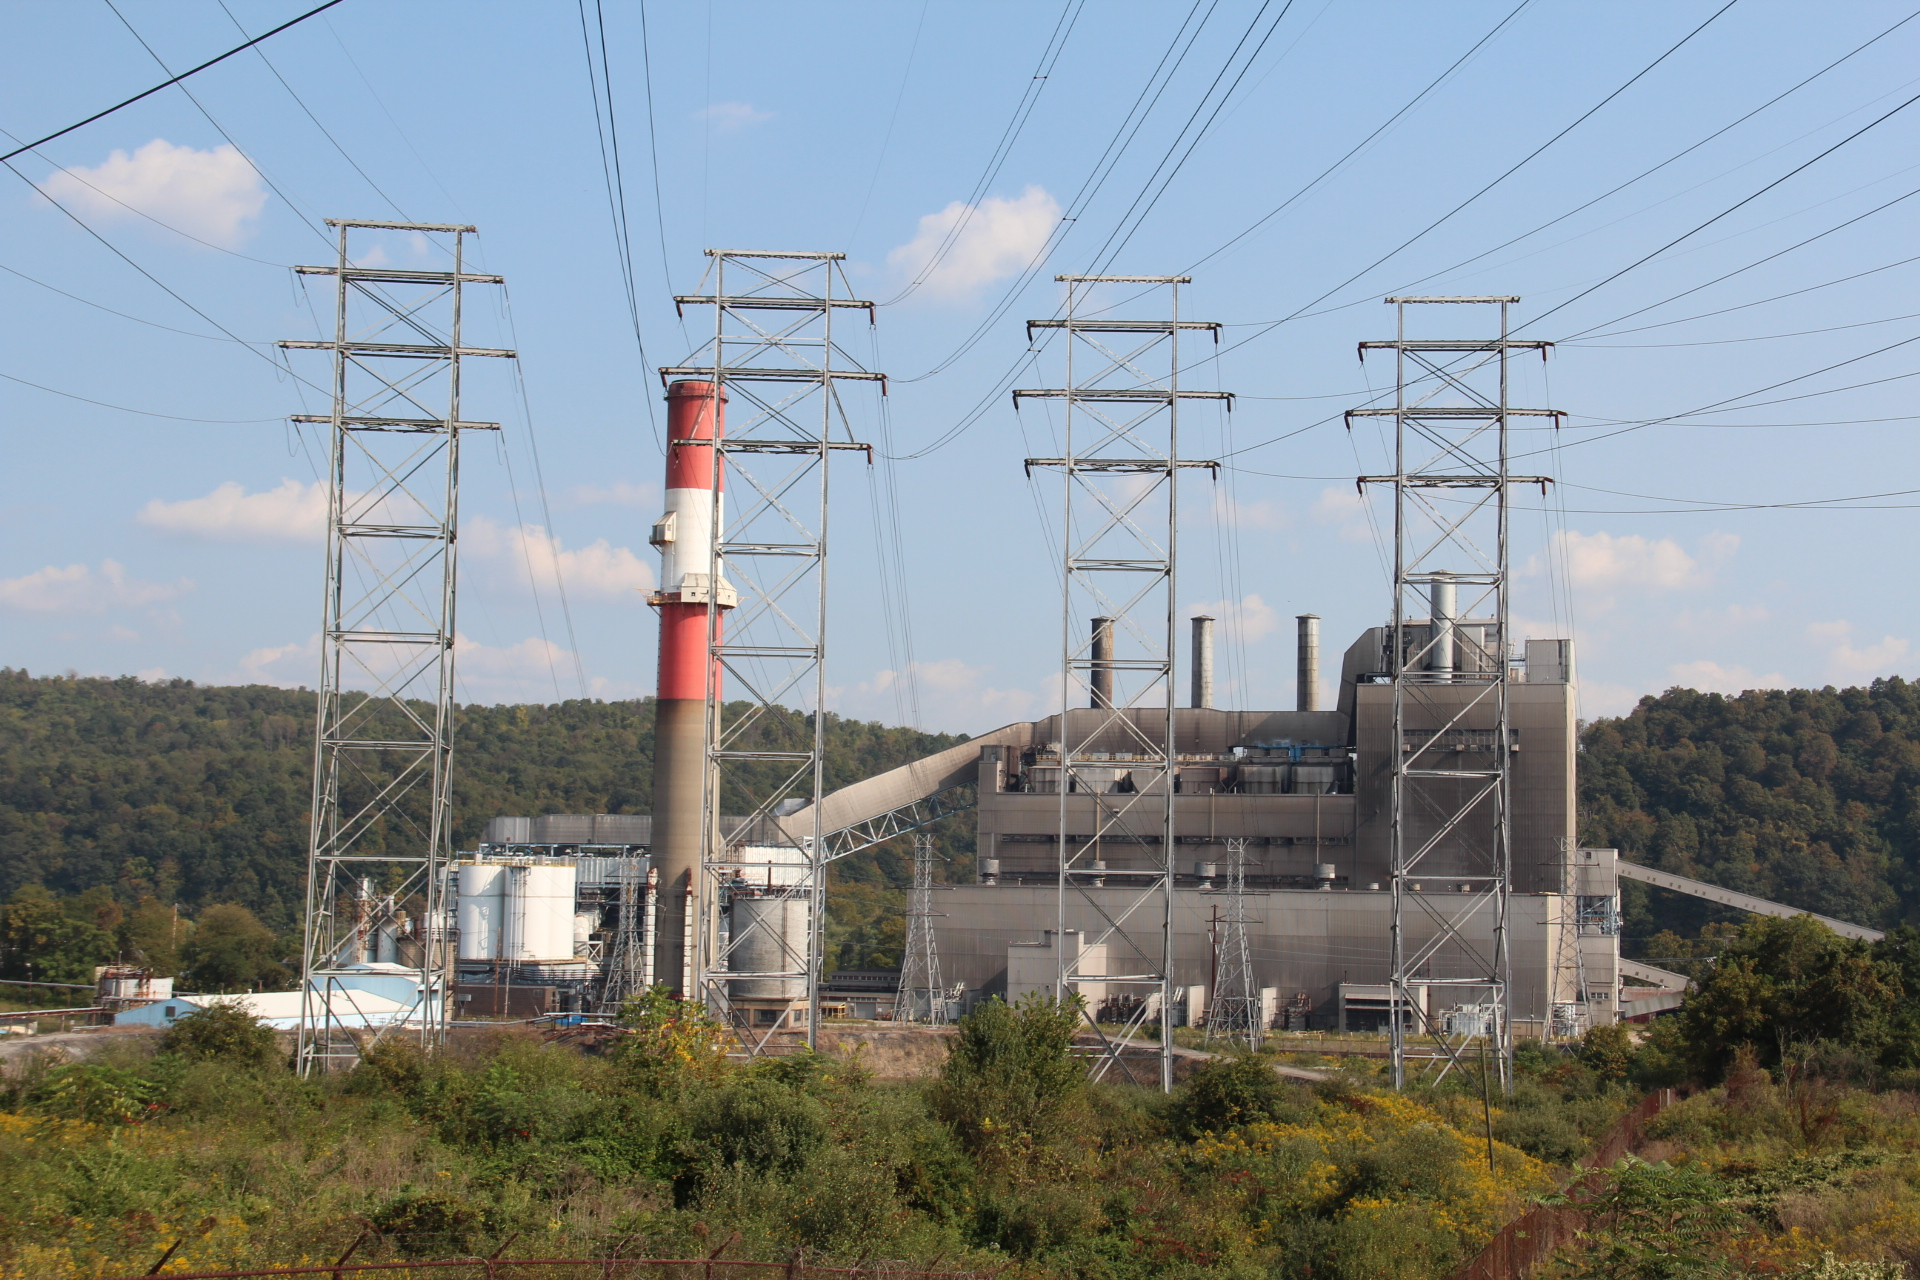 Extension requested for FERC decision on resiliency pricing